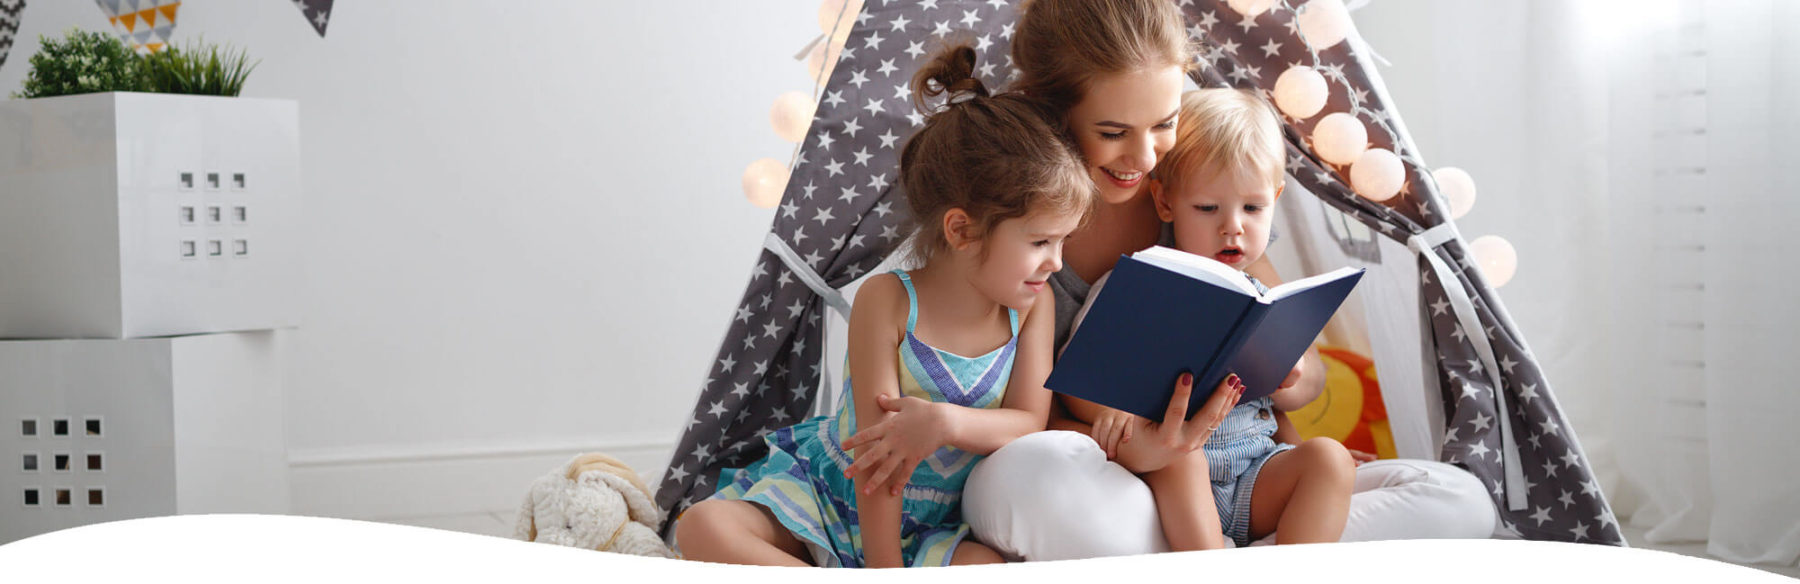 Mom reading to her young son and daughter in a bedroom fort